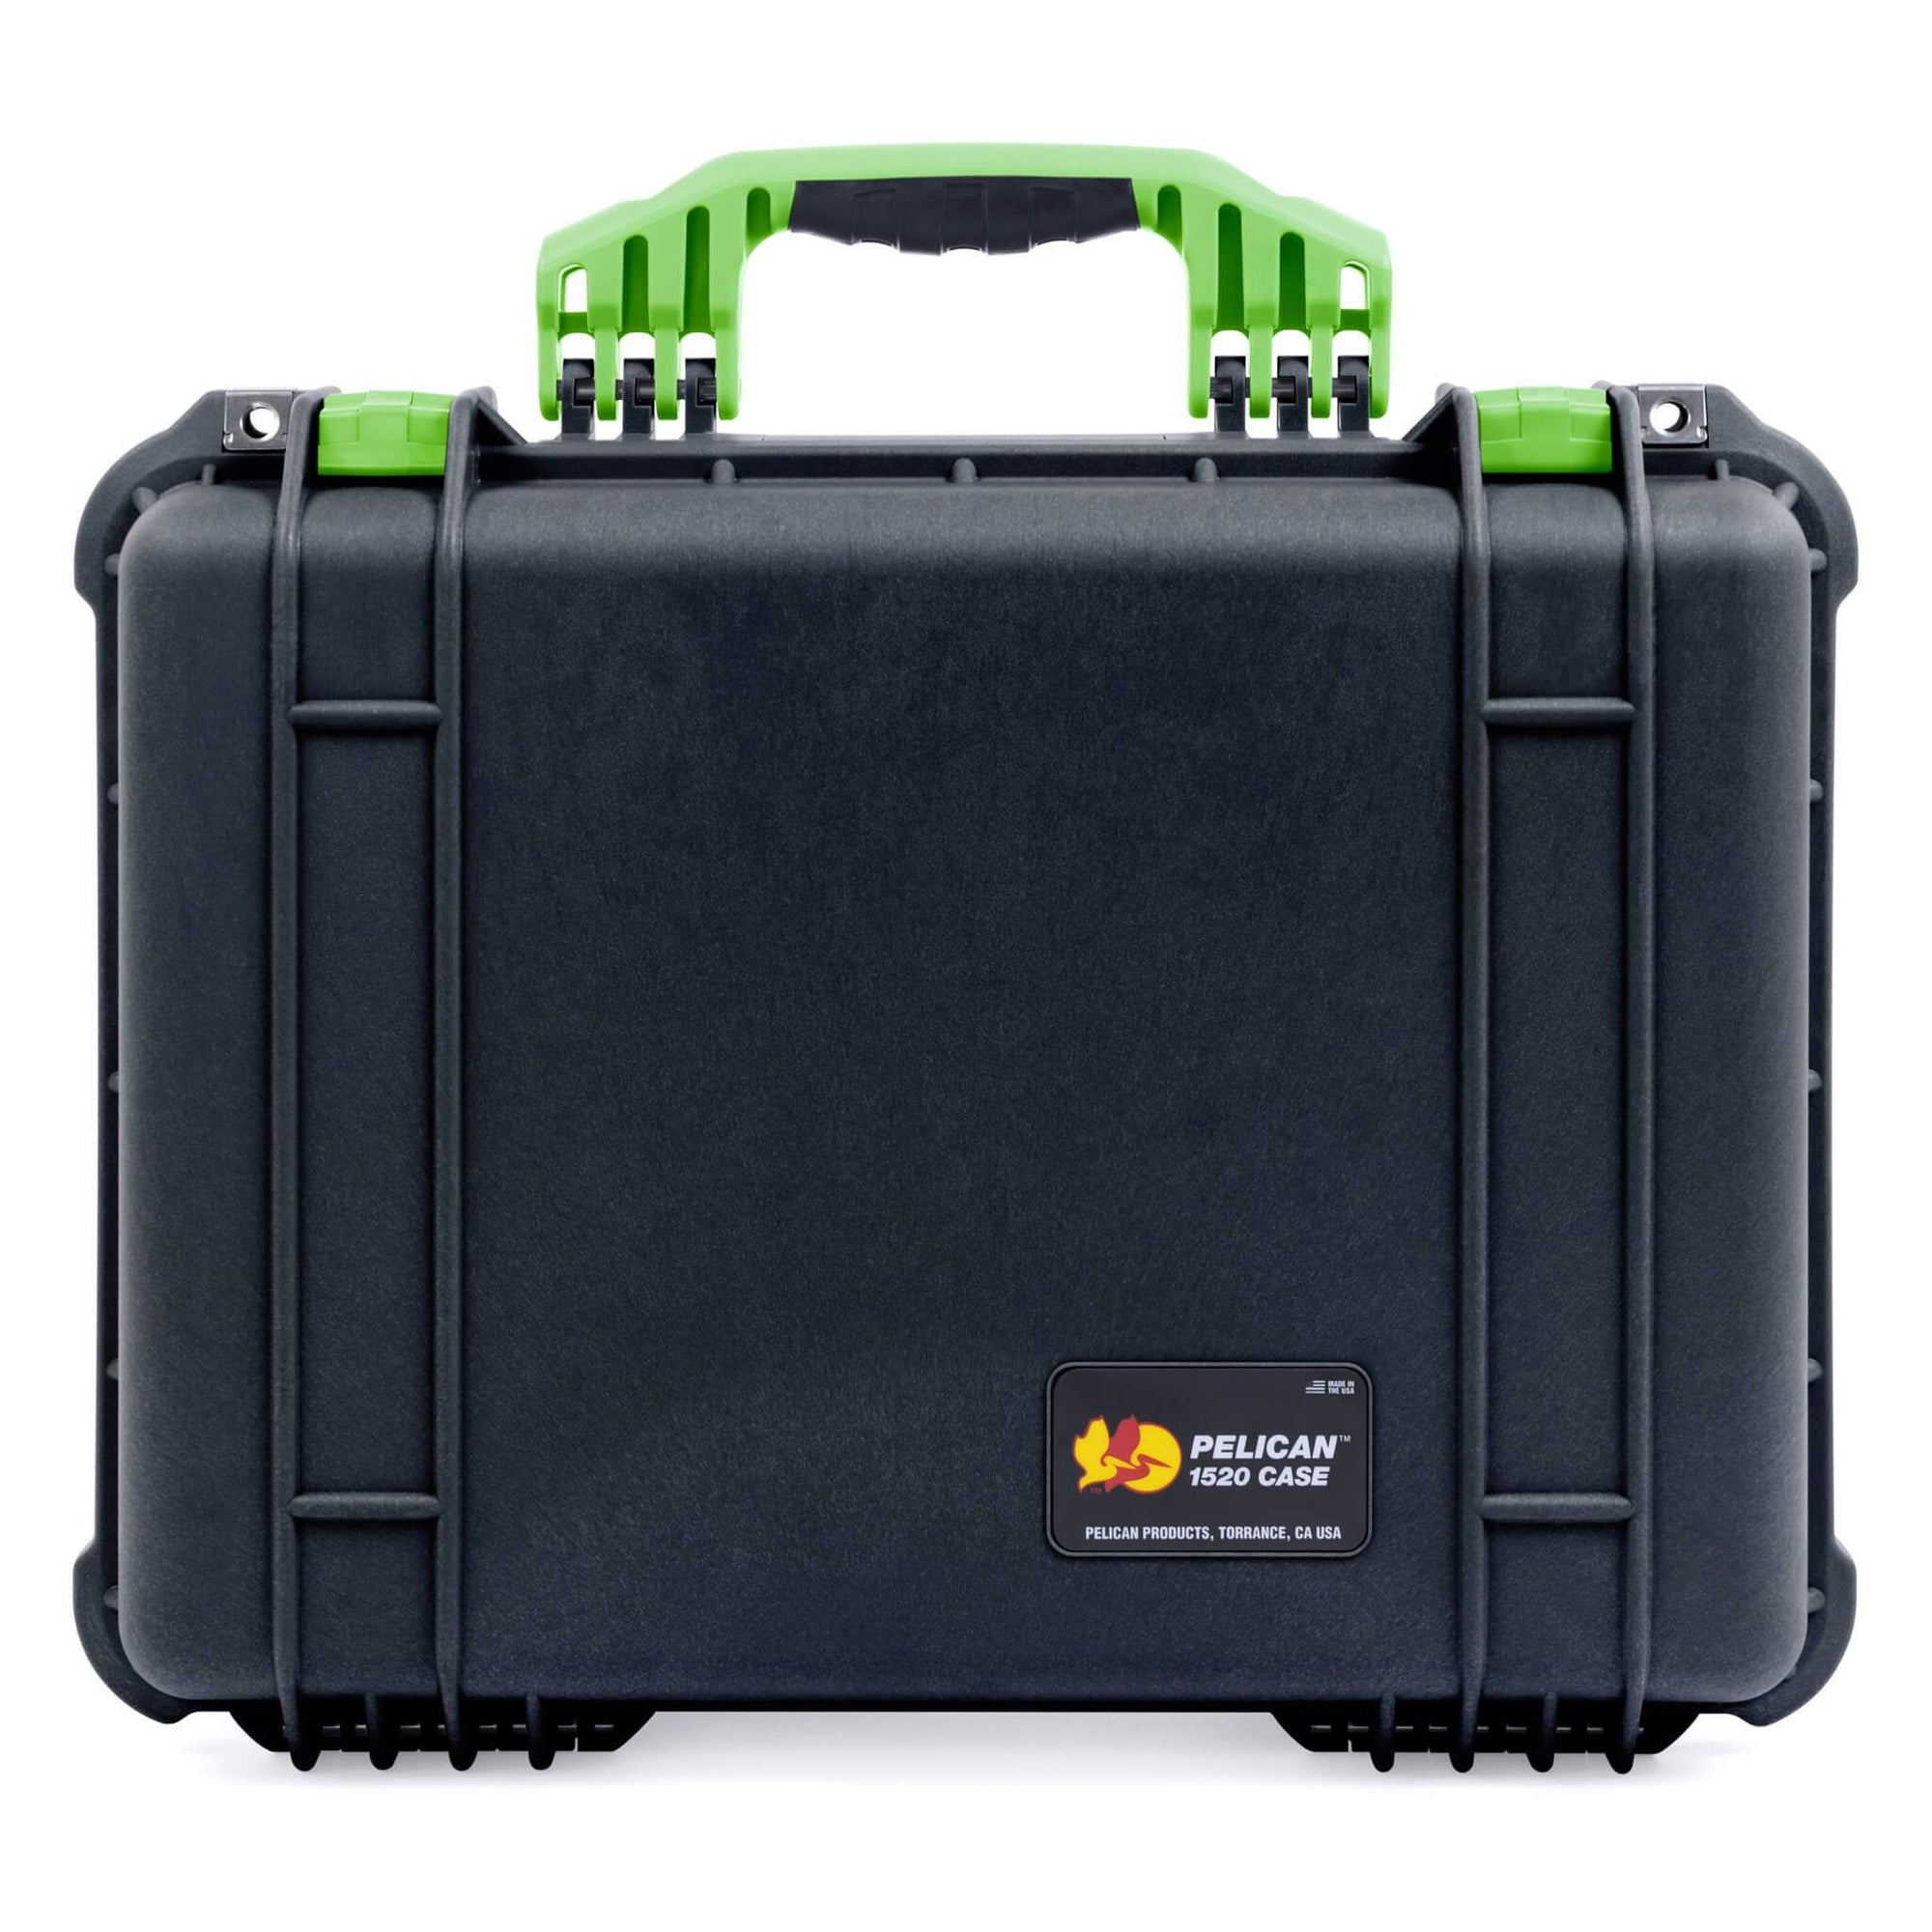 Pelican 1520 Case, Black with Lime Green Handle & Latches